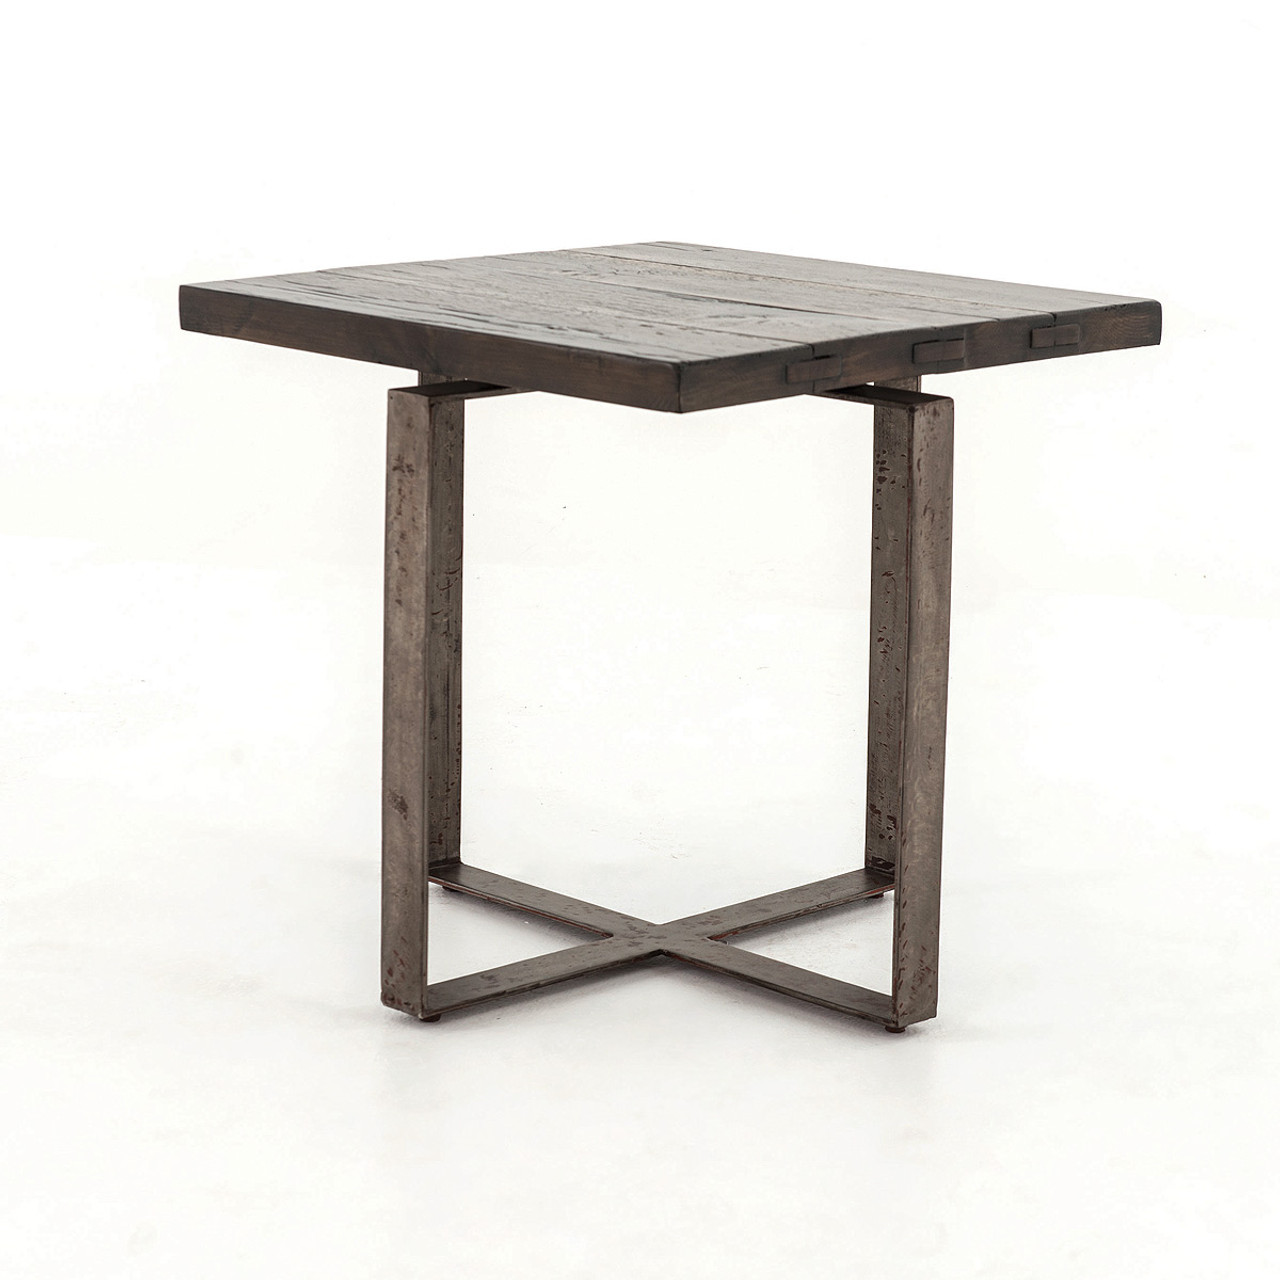 Brant Square Side Table With Wrought Iron Base Zin Home